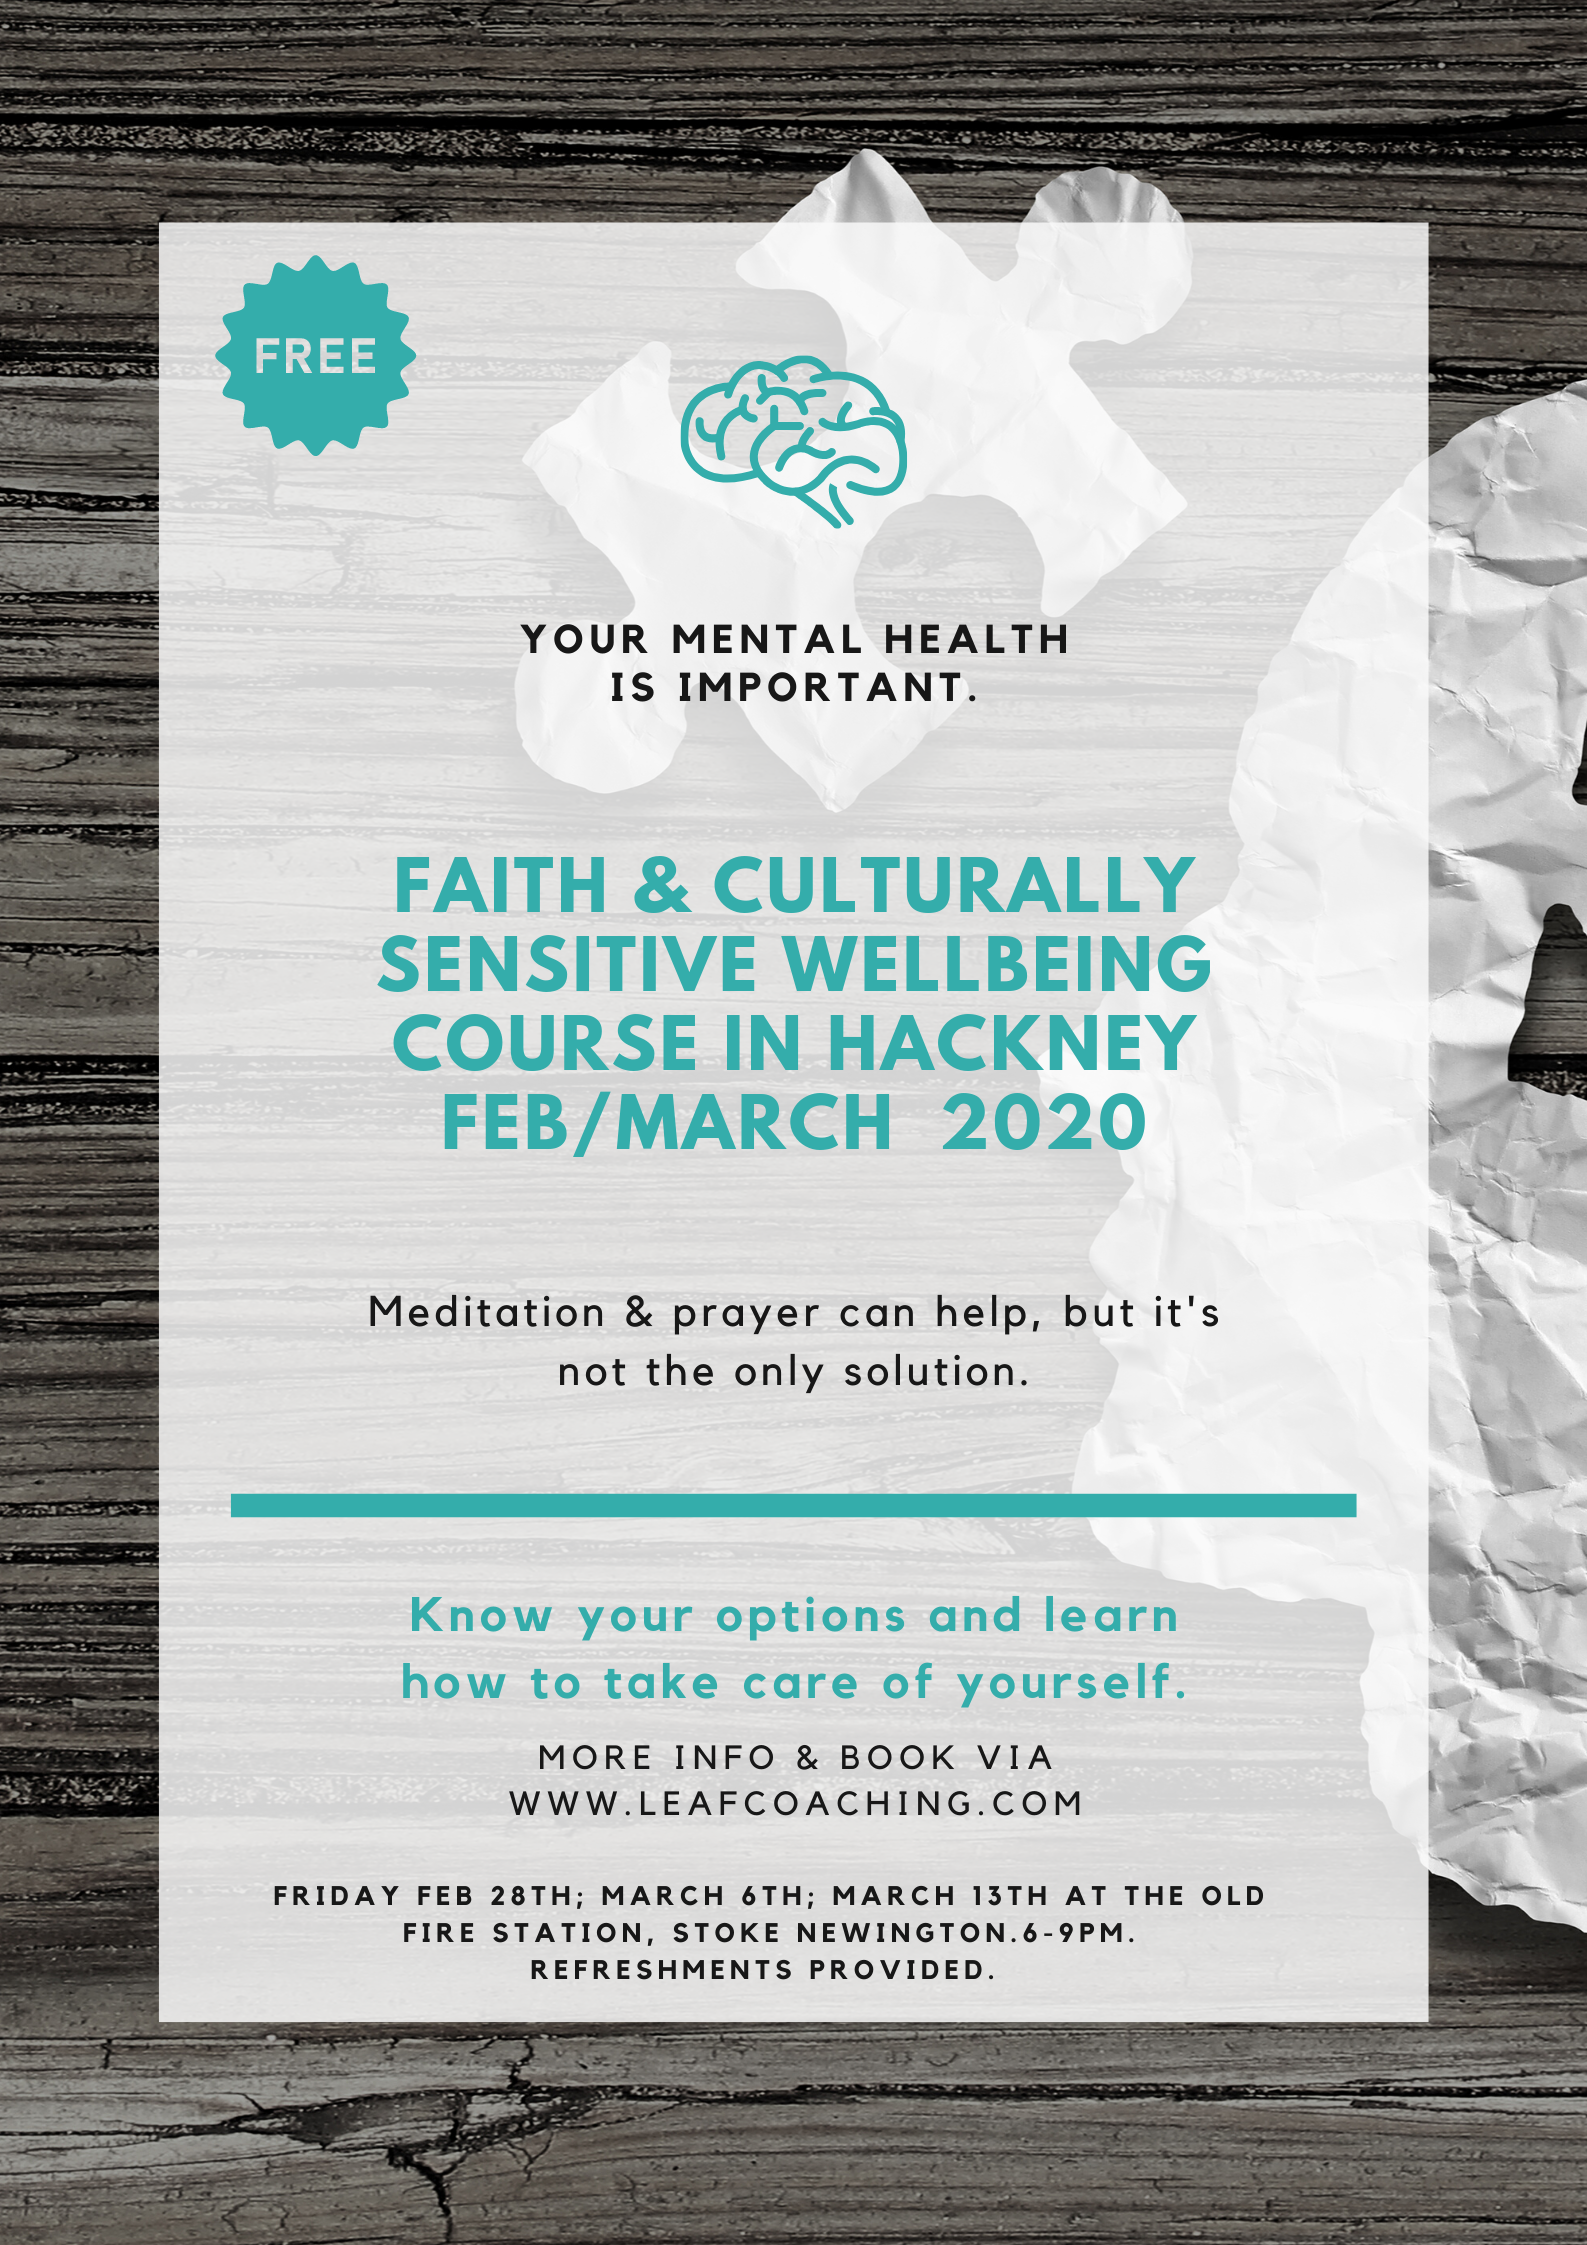 Think Well, Feel Well: A 3 session free course on Faith & Culturally Sensitive Wellbeing